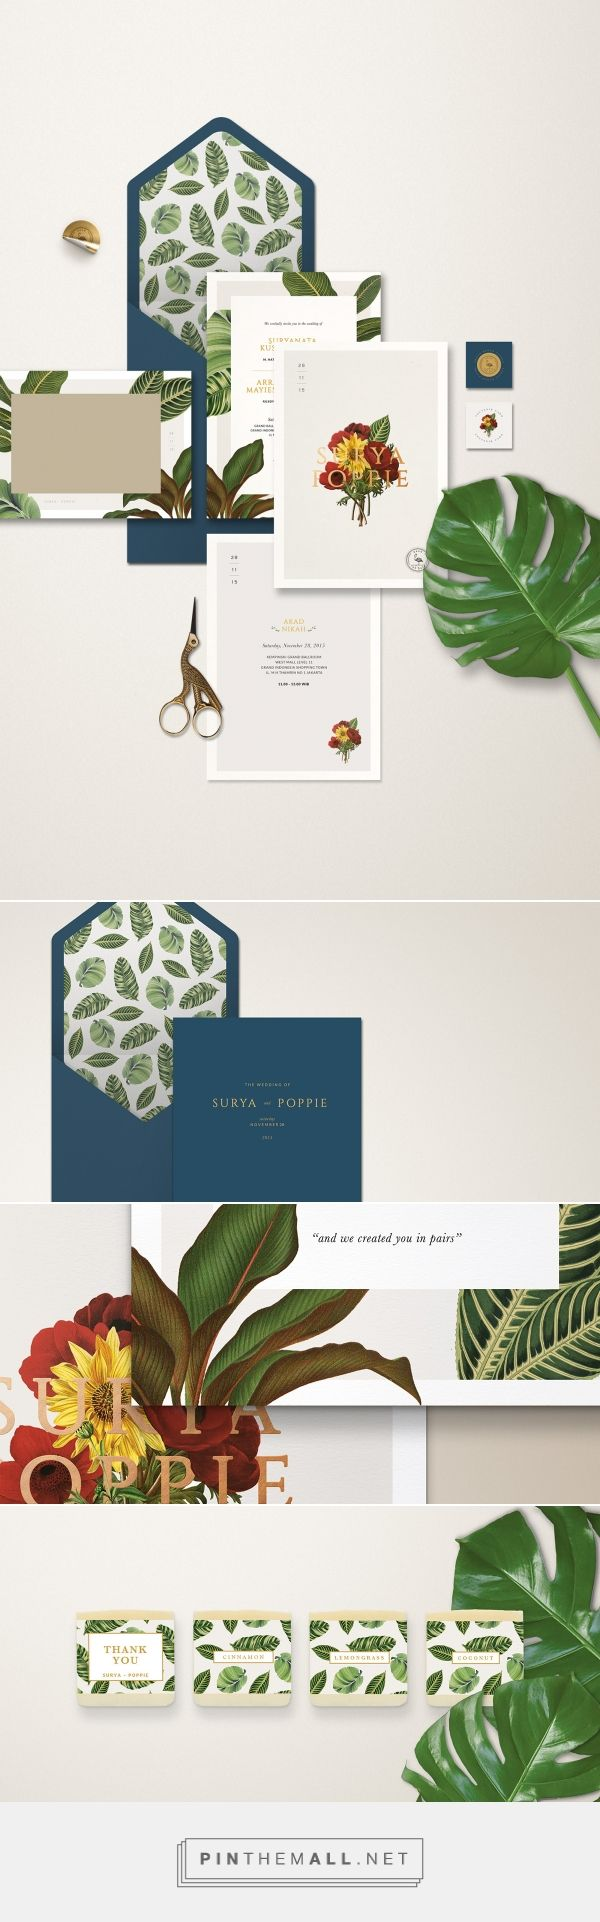 Surya & Poppie Wedding Suite by diasty hardhikaputri | Fivestar Branding Agency – Design and Branding Agency & Curated Inspiration Gallery